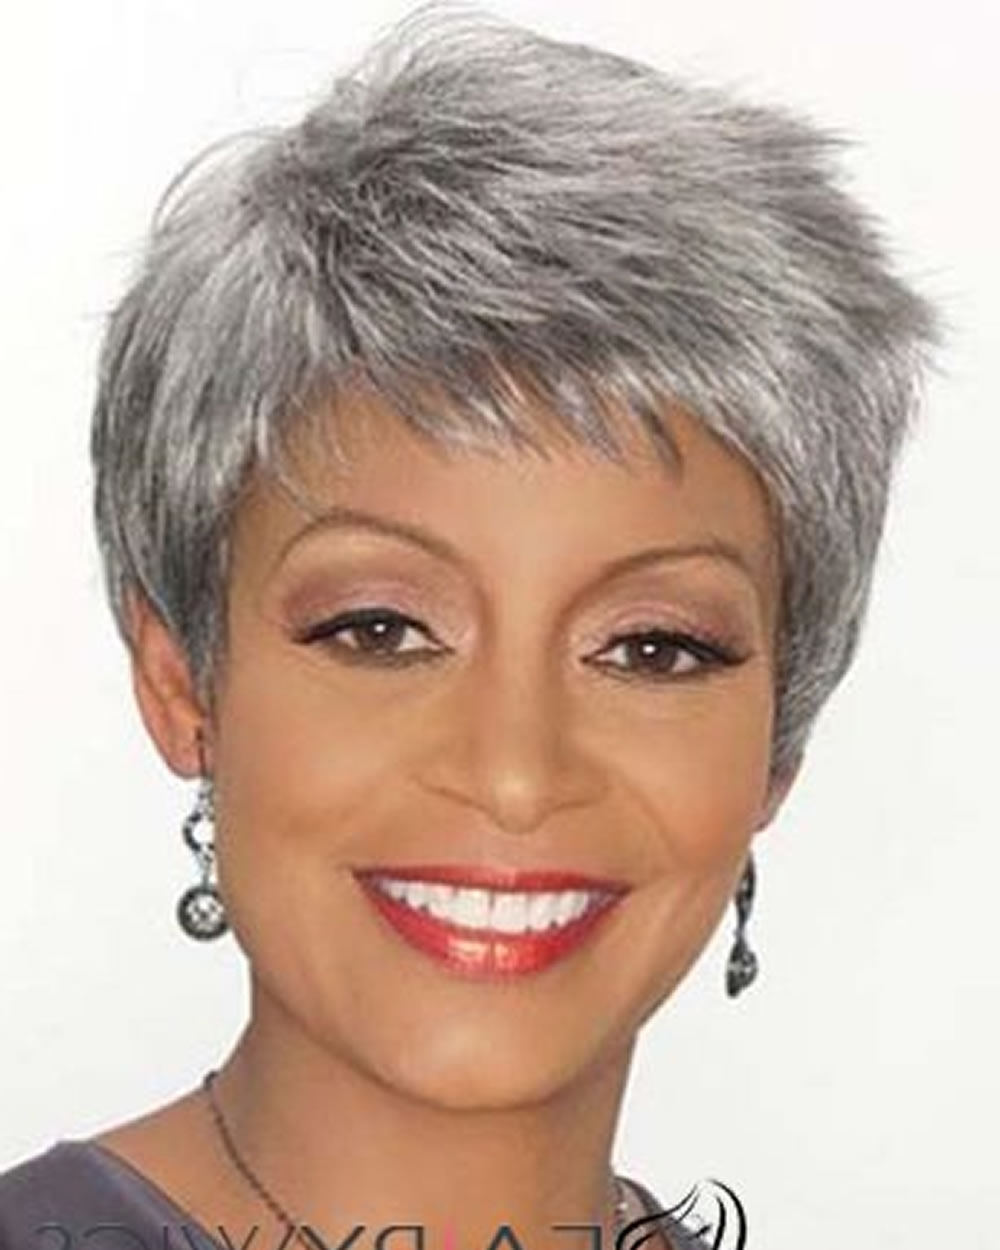 Gallery Of Pixie Hairstyles For Women Over 50 View 2 Of 15 Photos